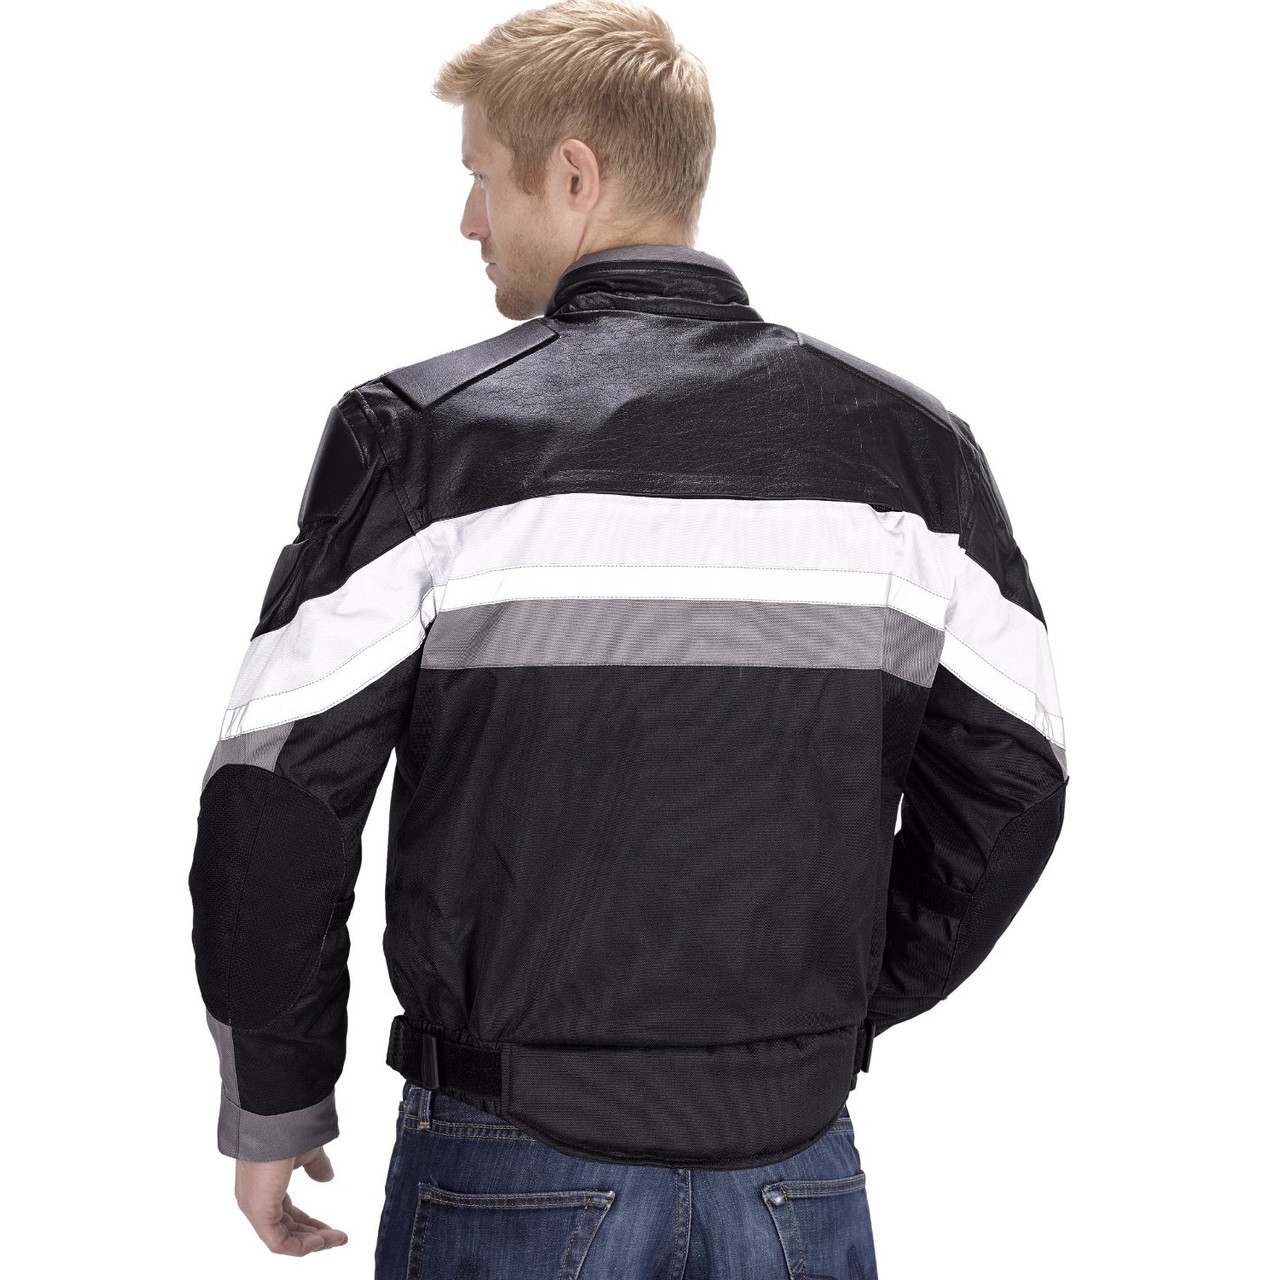 VikingCycle Hammer Motorcycle Jacket for Men Back Side